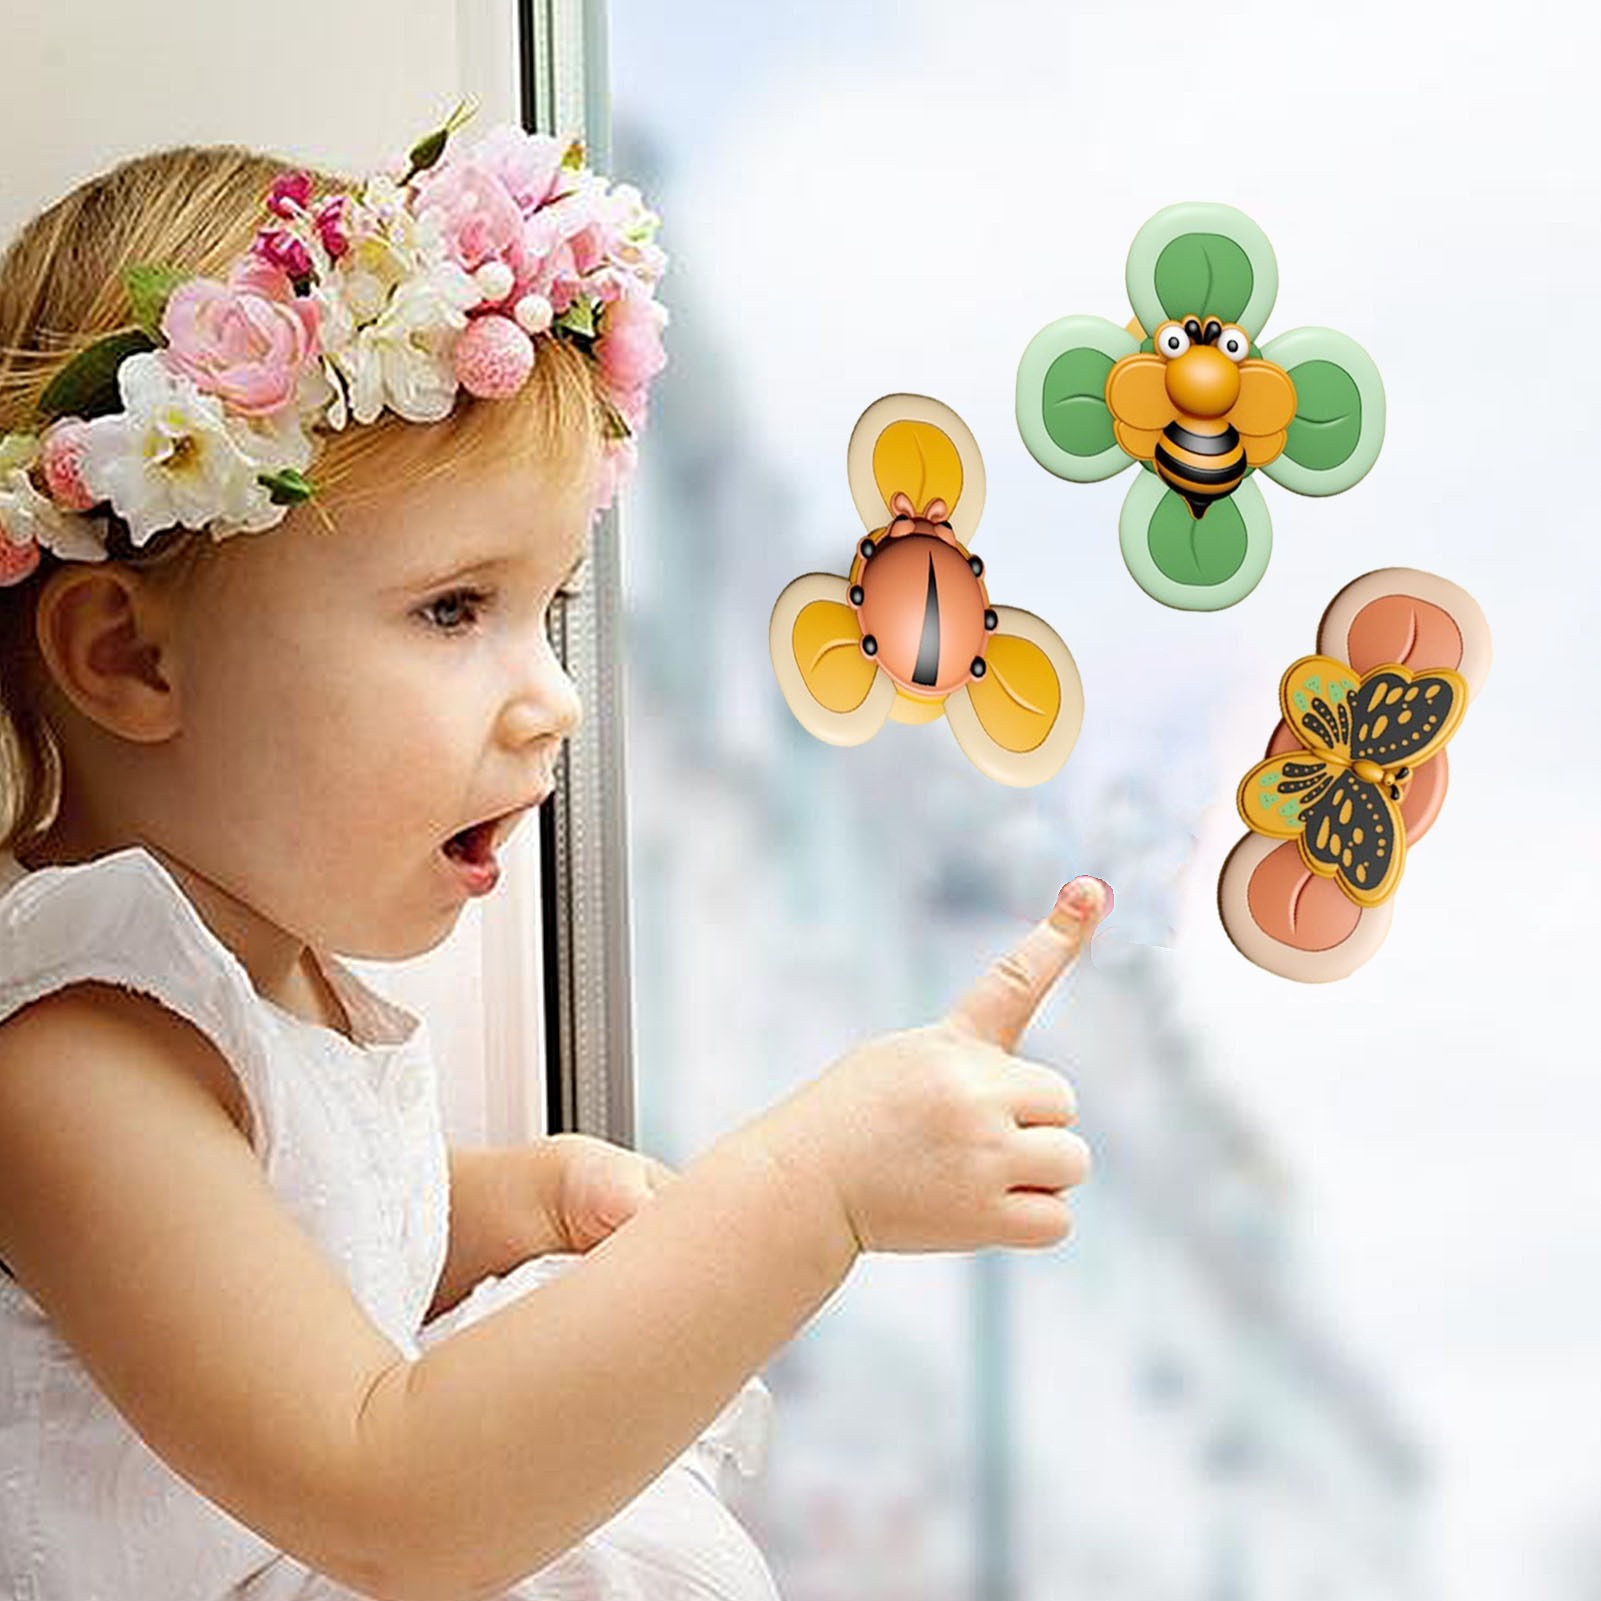 3PCS New Baby Bath Spinning Top Toy Insect Hand Spinner Toys With Suction Cup Spinner Toys Decompresssion Toys Gift For Kids enlarge